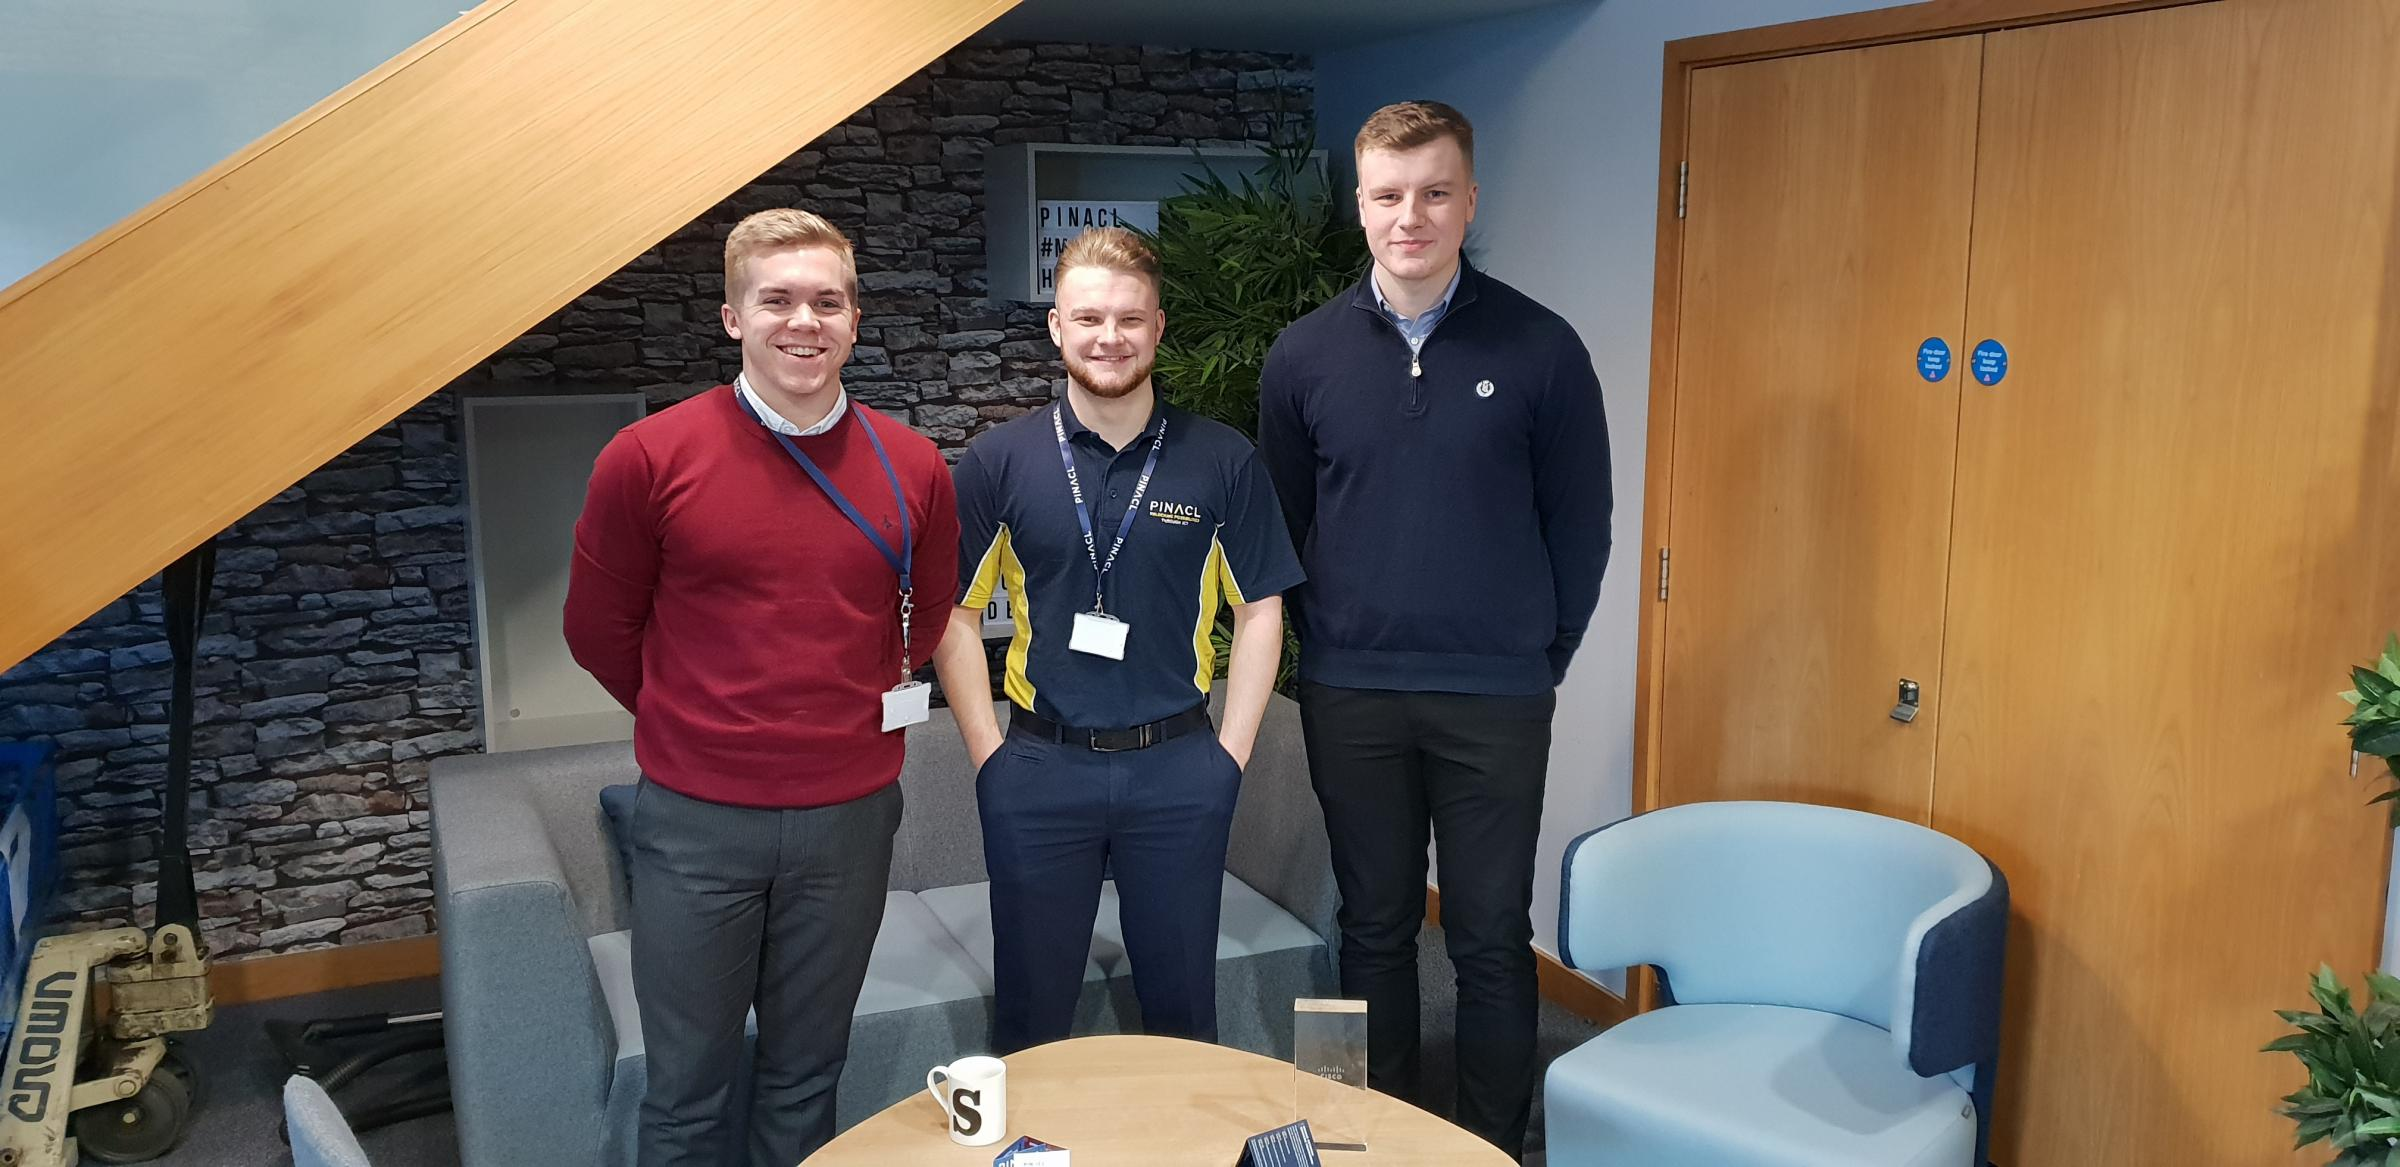 Pinnacl successes Zac Davies, Management Accounts Assistant, Rhys Harper, Project Manager, Louis Anglesea, Accounts Assistant Apprentice